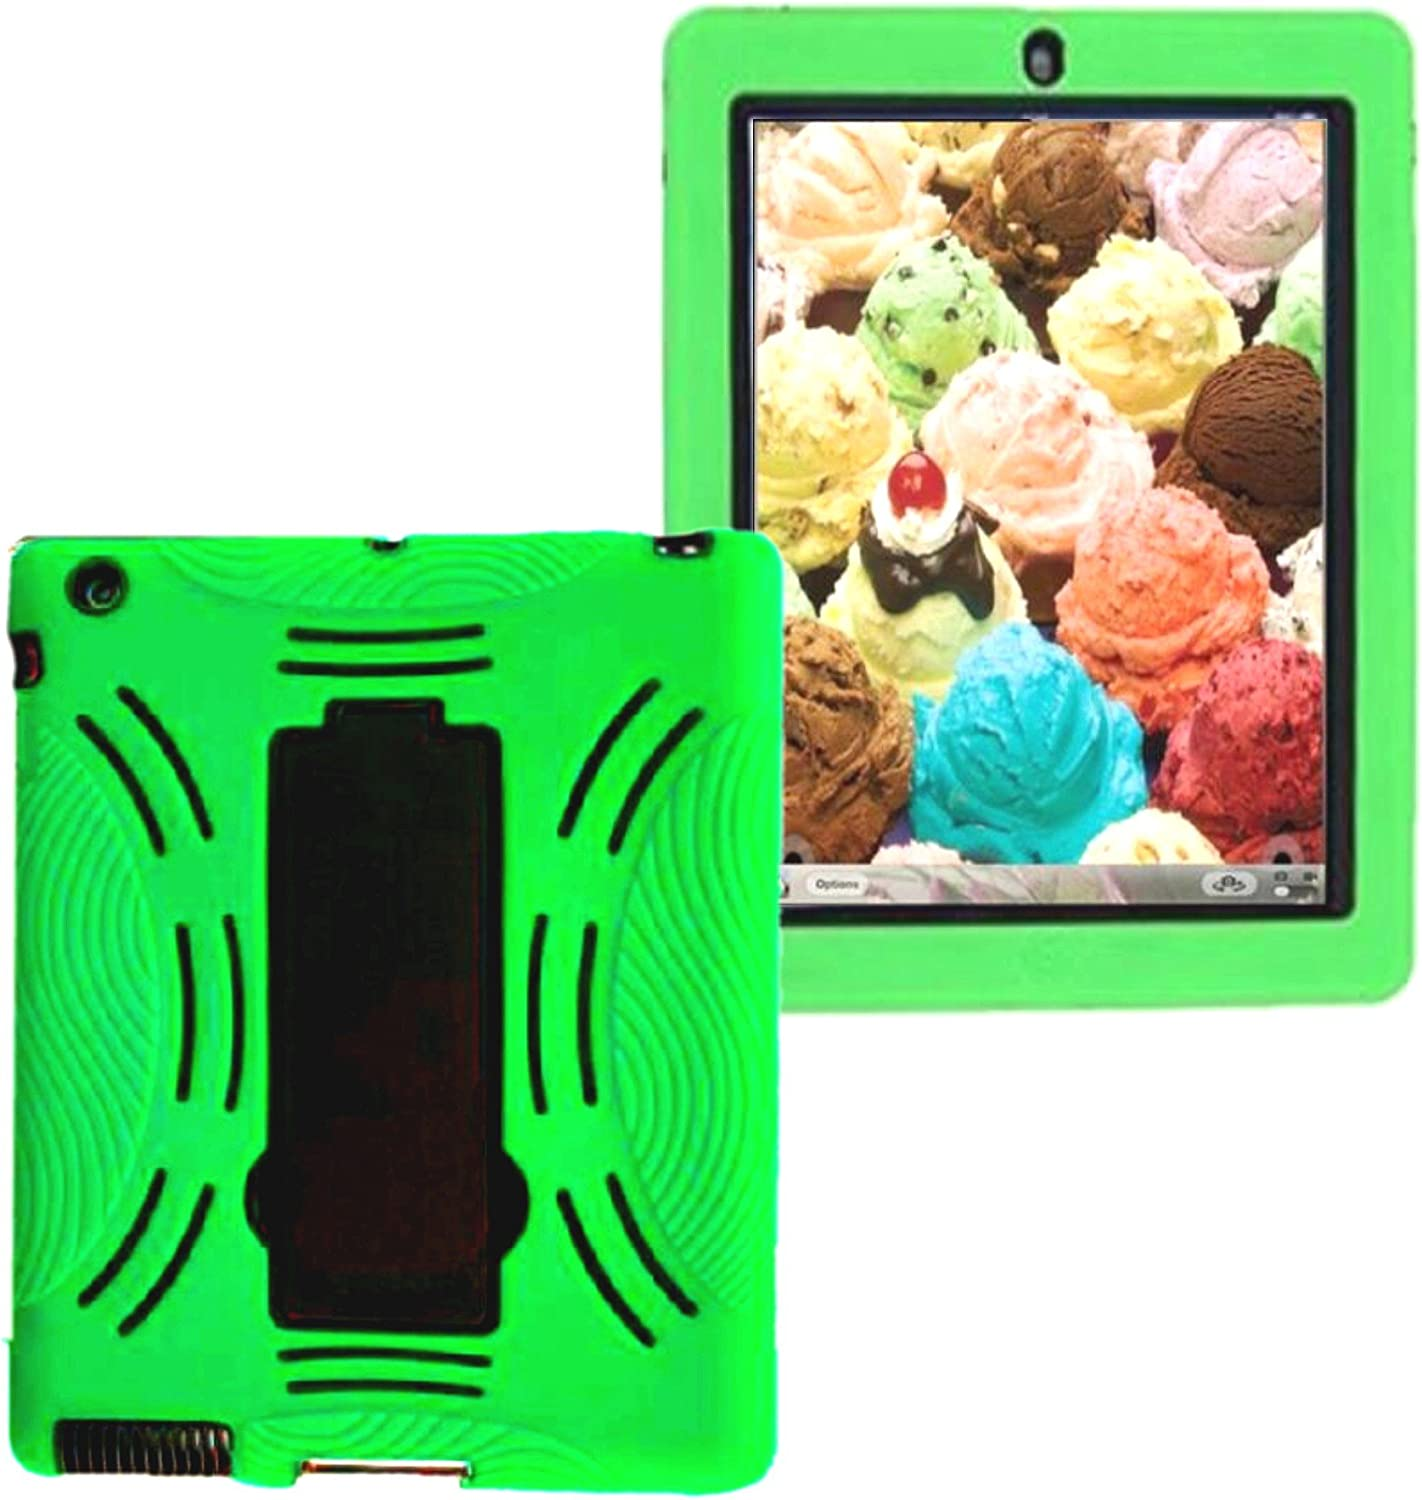 ipad 4th Generation 3in1 Kids Cases Fit for Ipad Model md510ll/A mc769ll /A mc979ll /A A1397 A1395 A1458 A1430 A1416 A1396 Rugged Shockproof Silicone Protective ipad 2nd 3rd 4th Cover